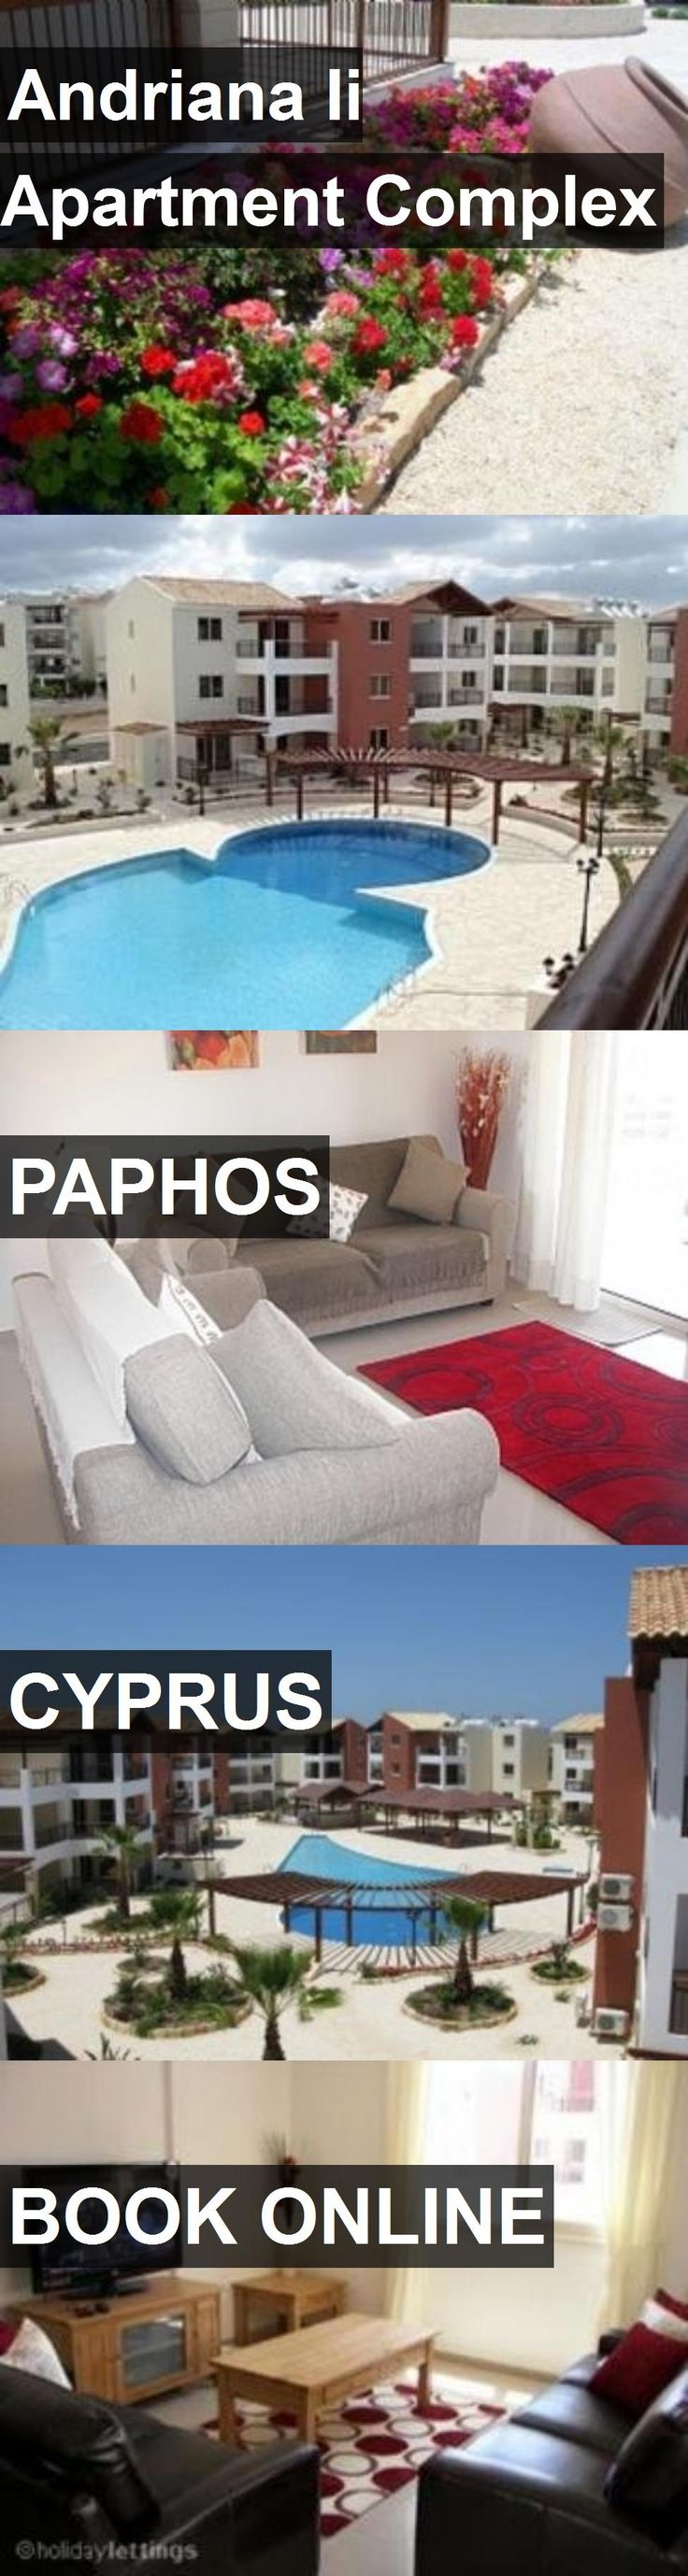 Andriana Ii Apartment Complex in Paphos, Cyprus. For more information, photos, reviews and best prices please follow the link. #Cyprus #Paphos #travel #vacation #apartment